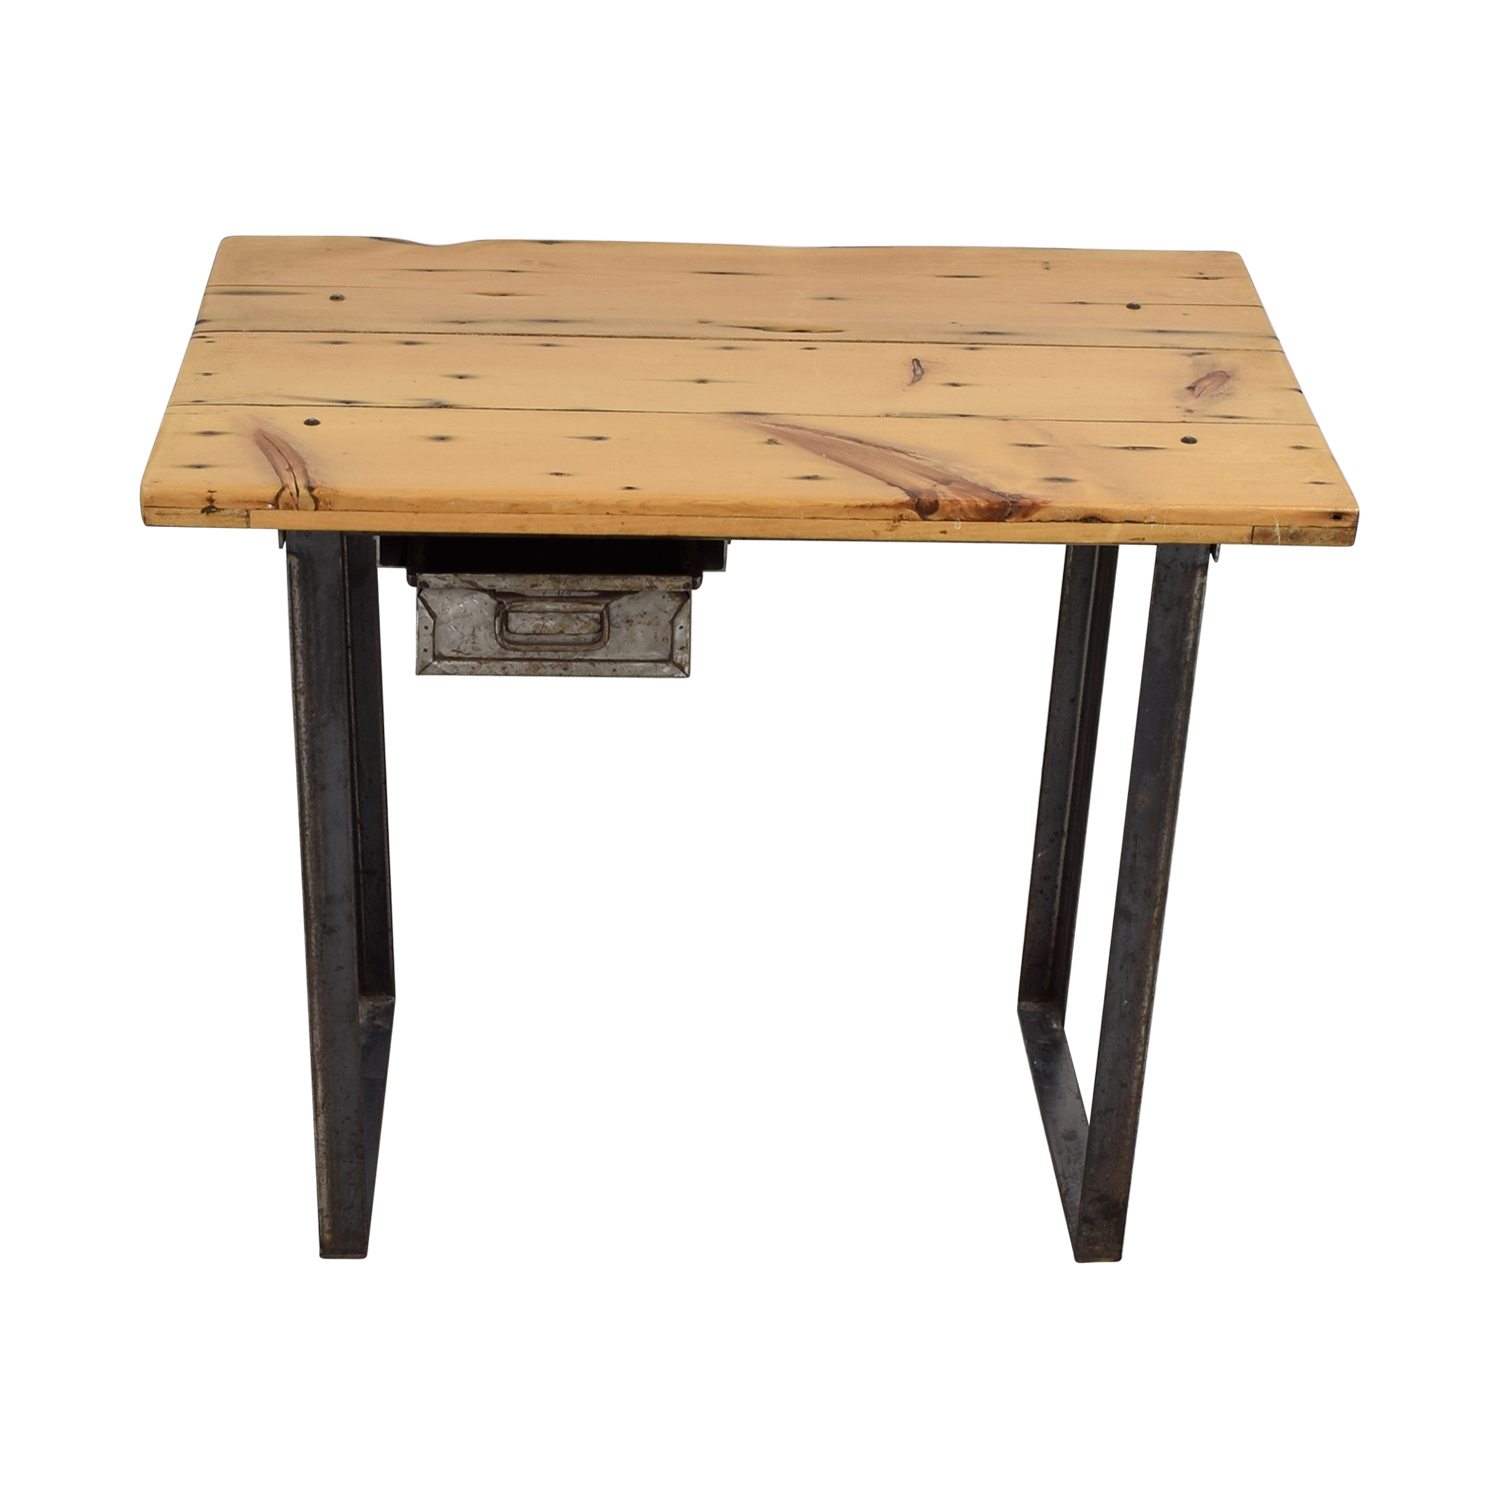 shop  Rustic Wood Table with Metal Drawer online